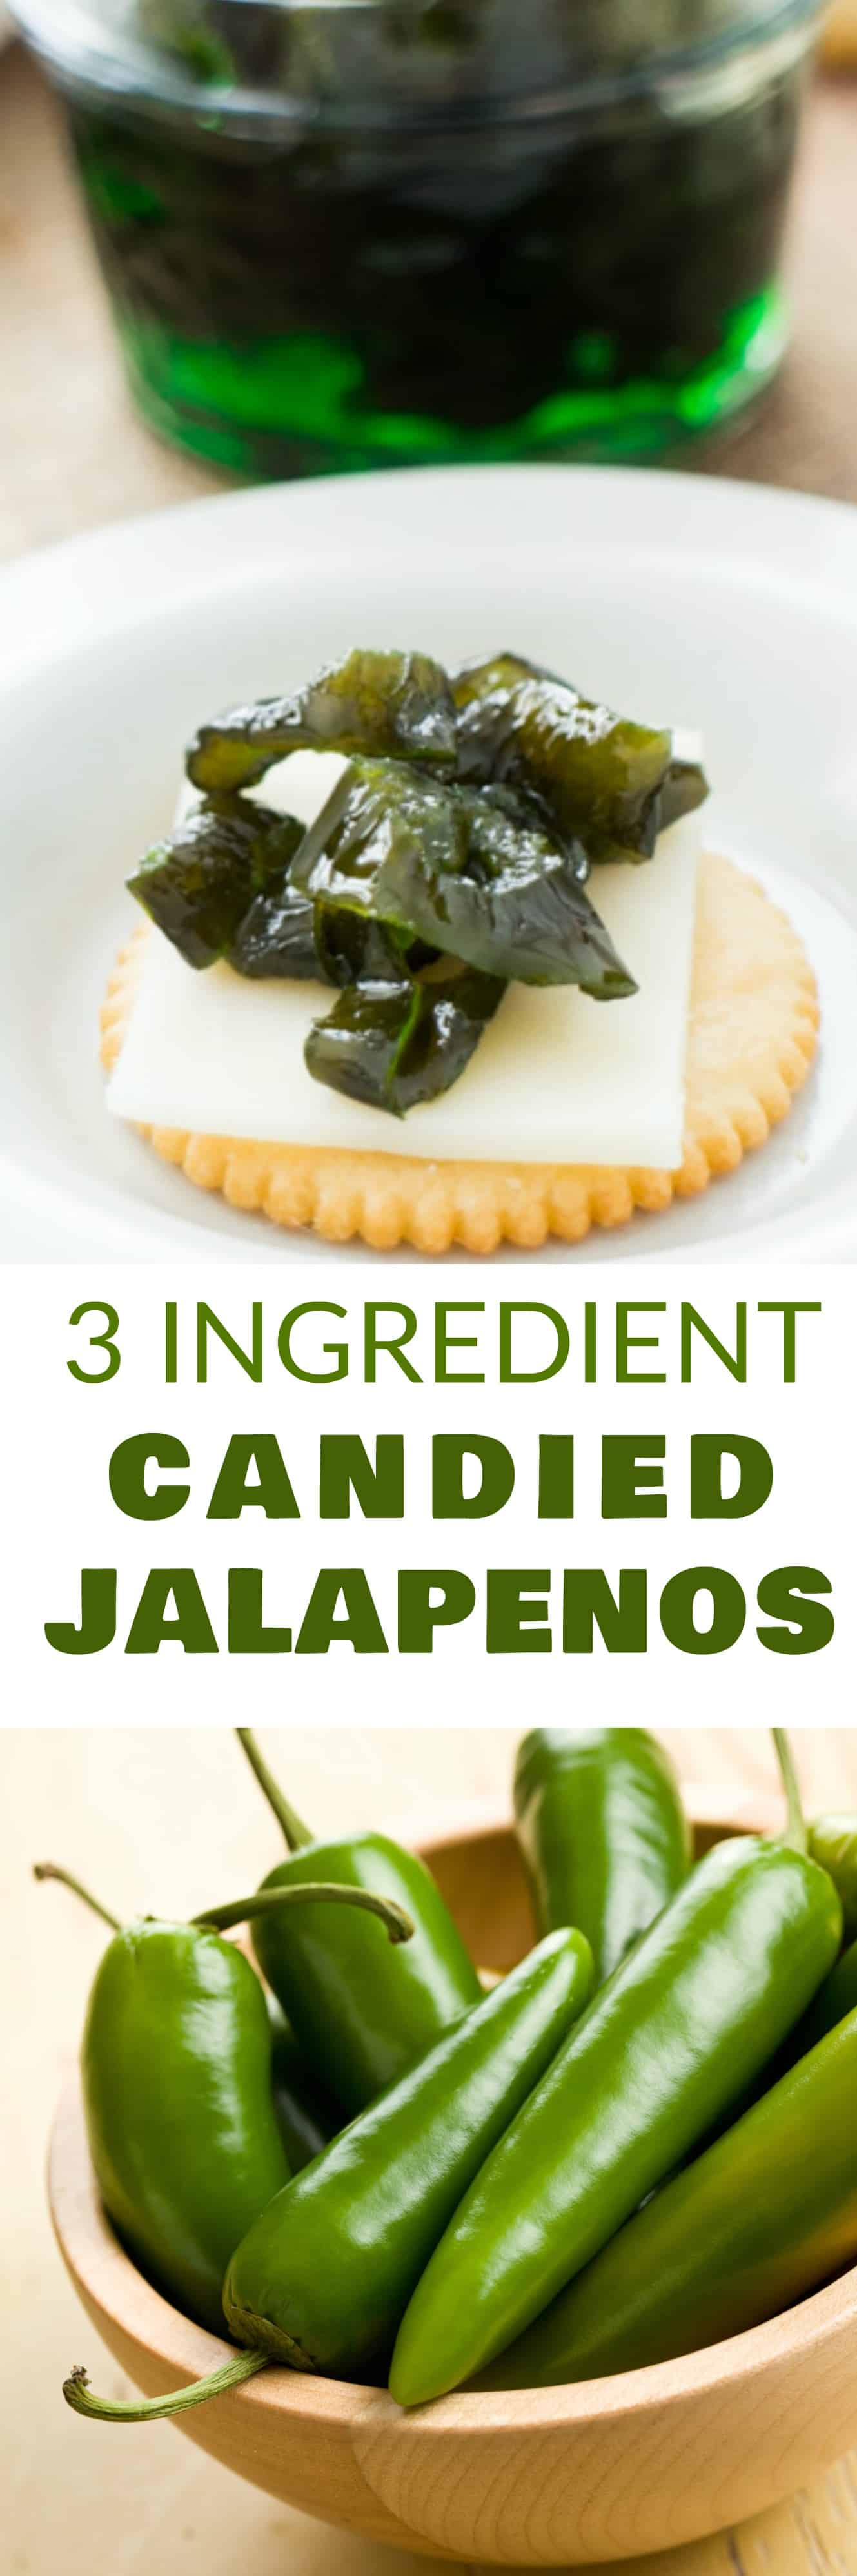 EASY 3 INGREDIENT Candied Jalapenos recipe! You only need jalapenos, sugar and water to make refrigerator candied jalapenos!  Use these as a appetizer dip, on top of crackers or in dinner dishes! Store in refrigerator or use for canning!